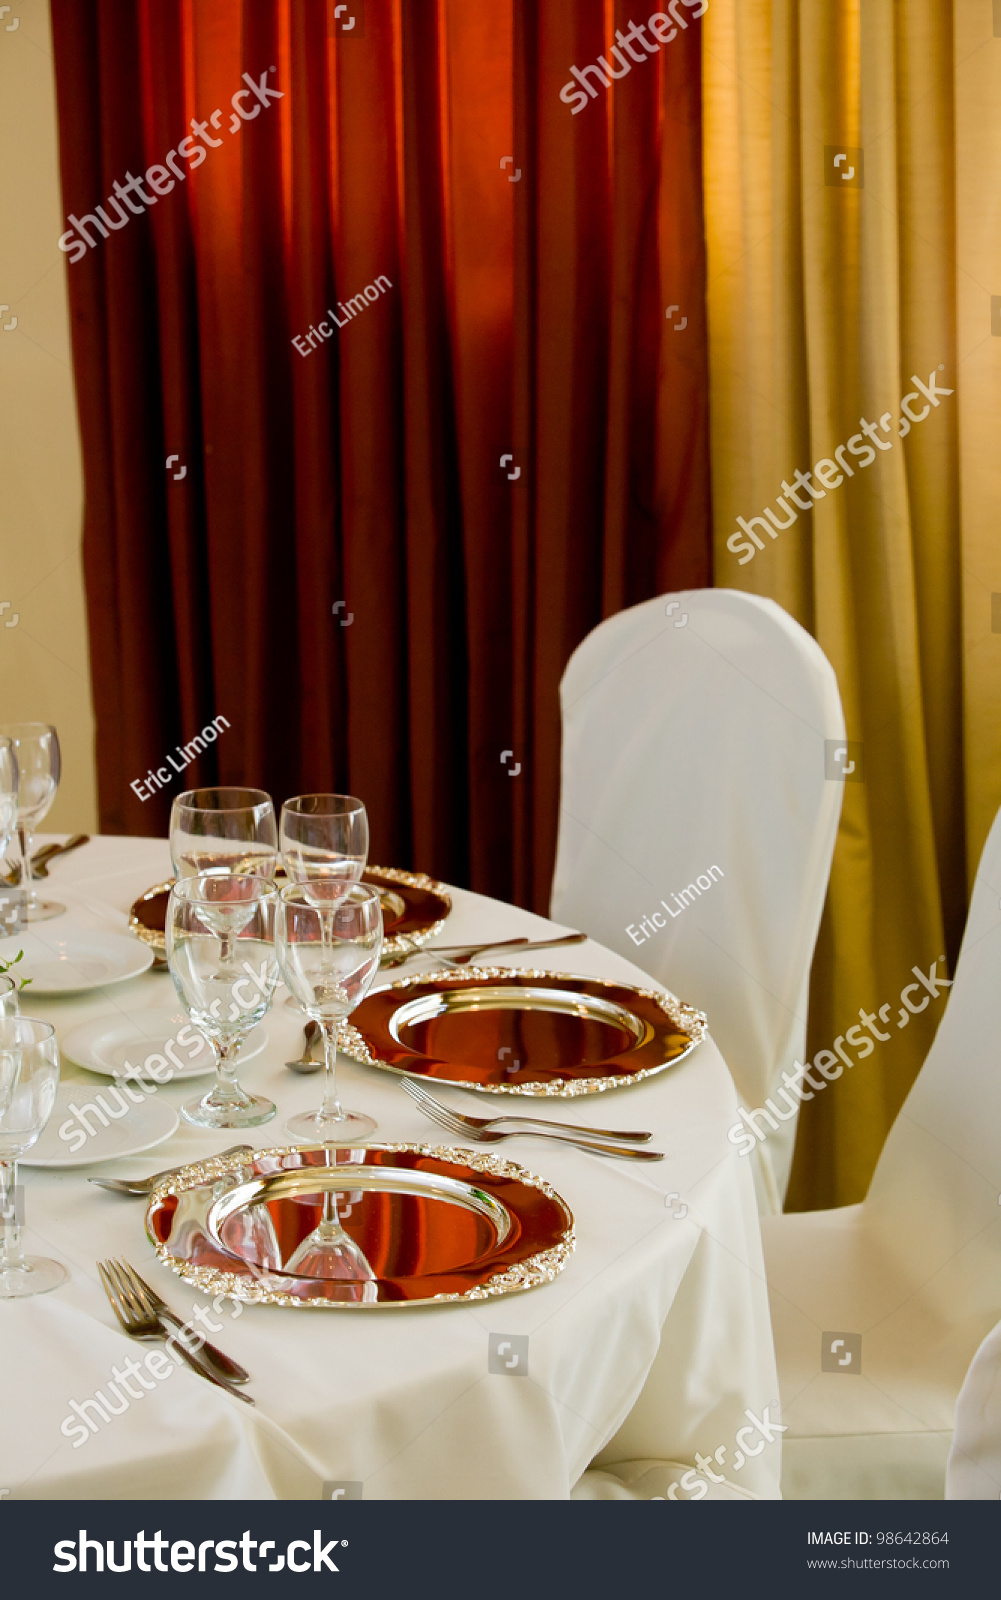 Wedding Table And Chairs With White Tablecloth And Silver  : stock photo wedding table and chairs with white tablecloth and silver platters set for fine dining 98642864 from www.shutterstock.com size 1001 x 1600 jpeg 504kB